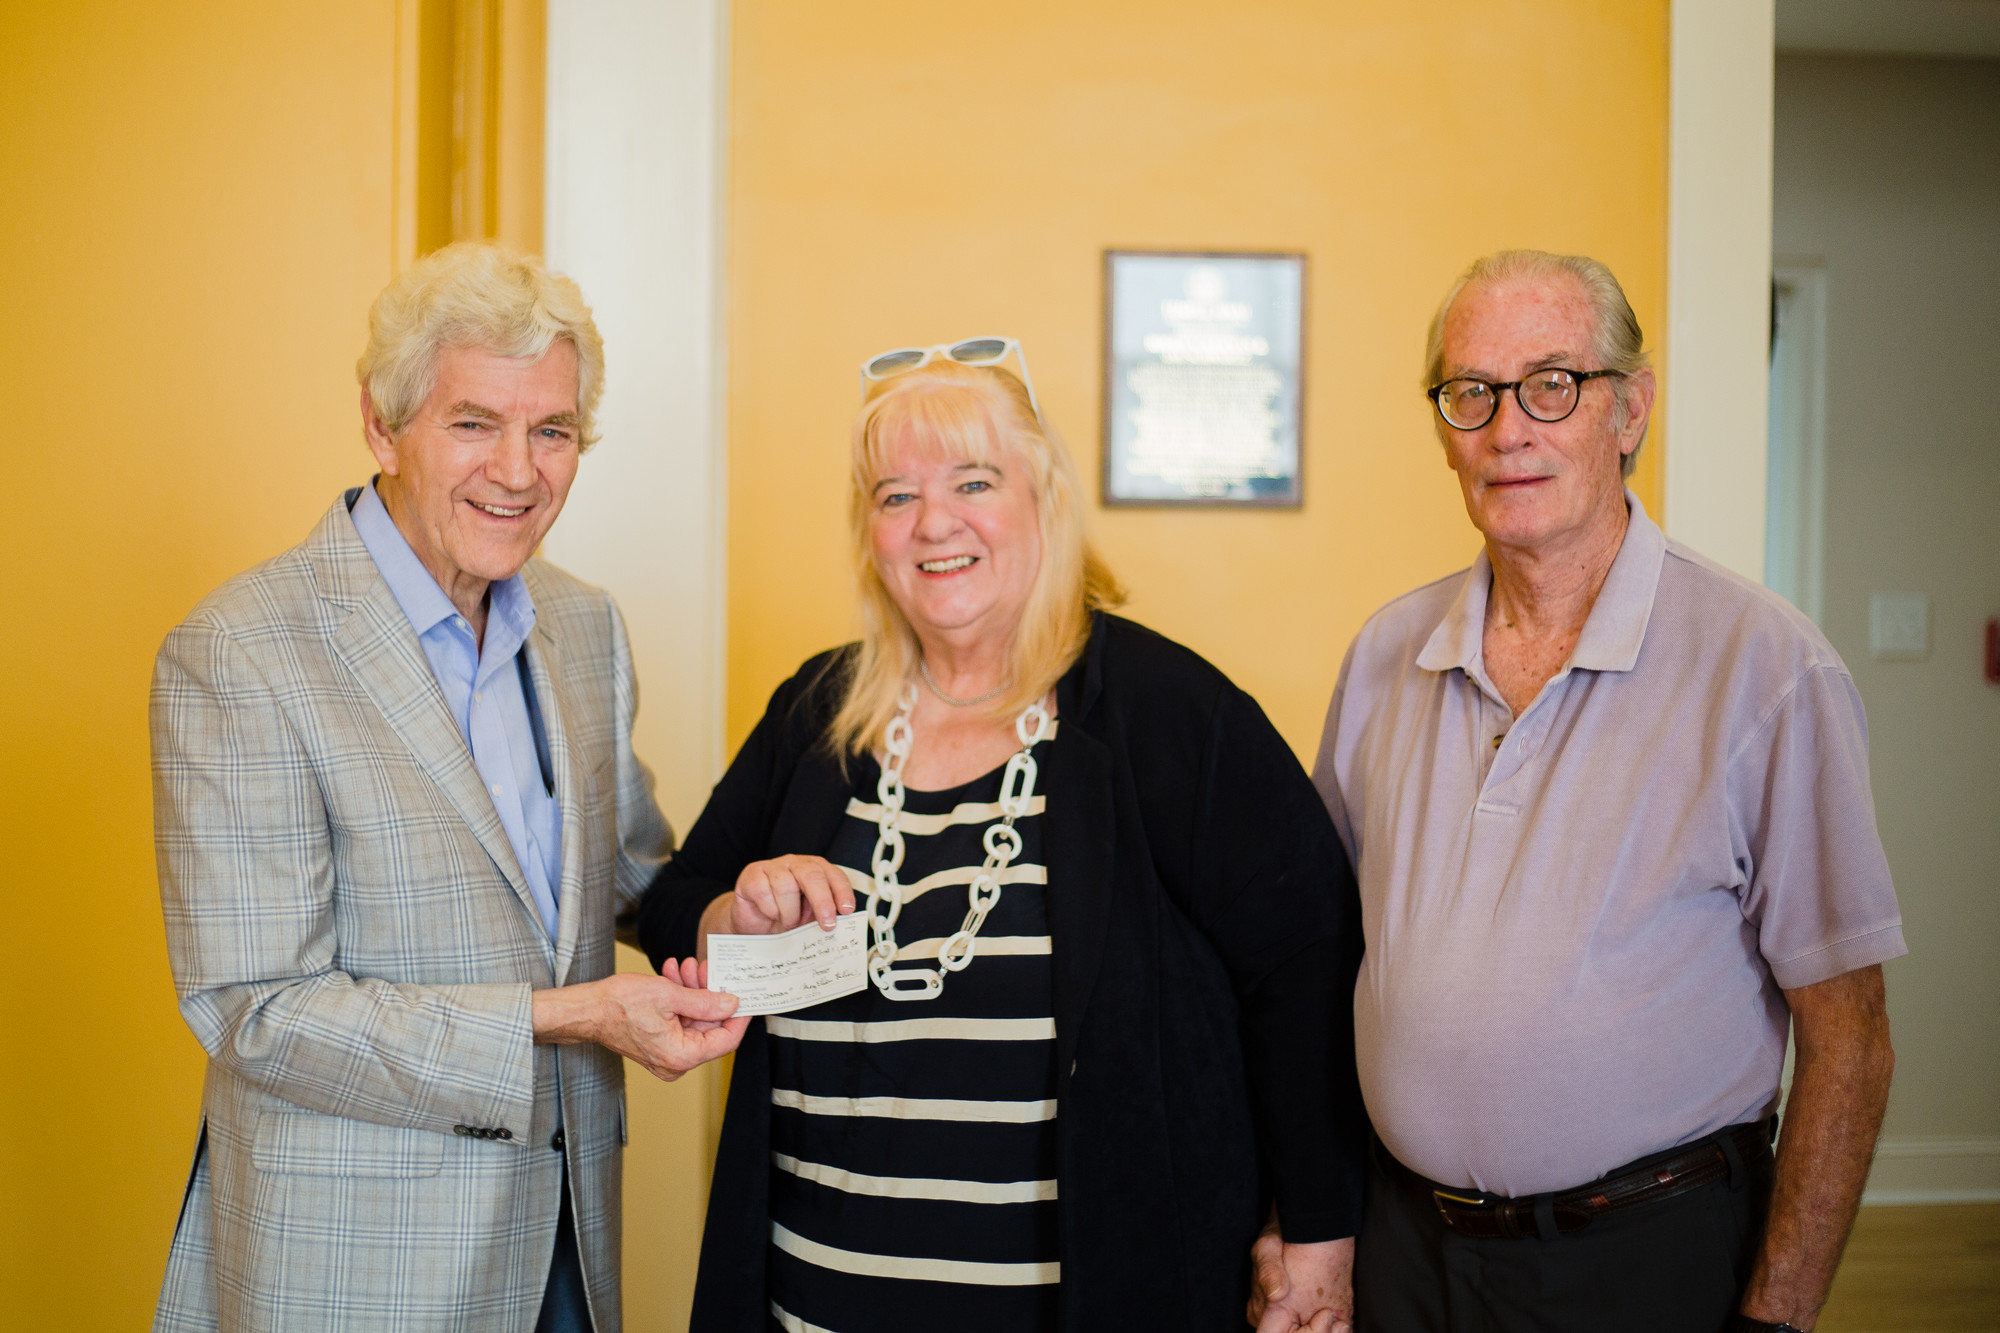 Roger Ackerman, Temple Sinai board member, left, is seen with Mary Ellen Donovan Fuller, center, who donated money recently to Sumter's Jewish History Center, and Fuller's husband, David.